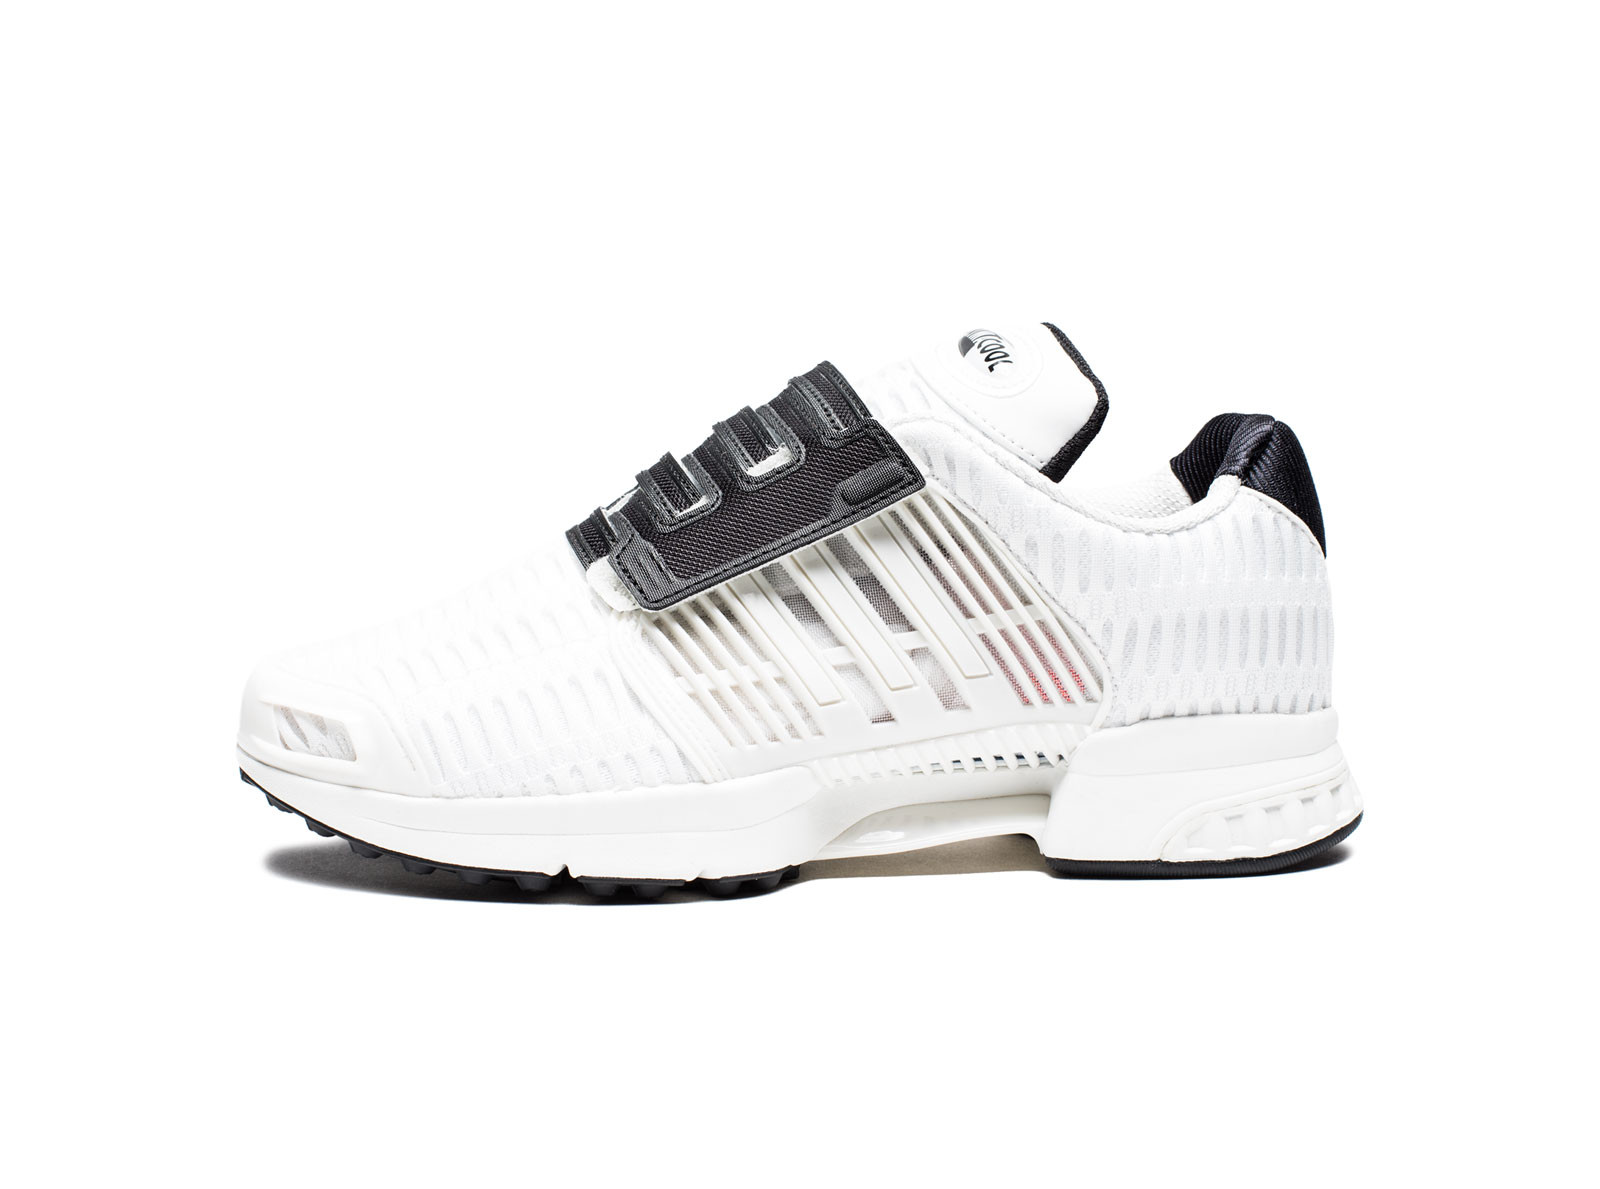 new style fbae4 7d08f New year, new look for the adidas Climacool 1. This version of the model,  which is named the adidas Climacool 1 CMF comes with a new feature that  slightly ...